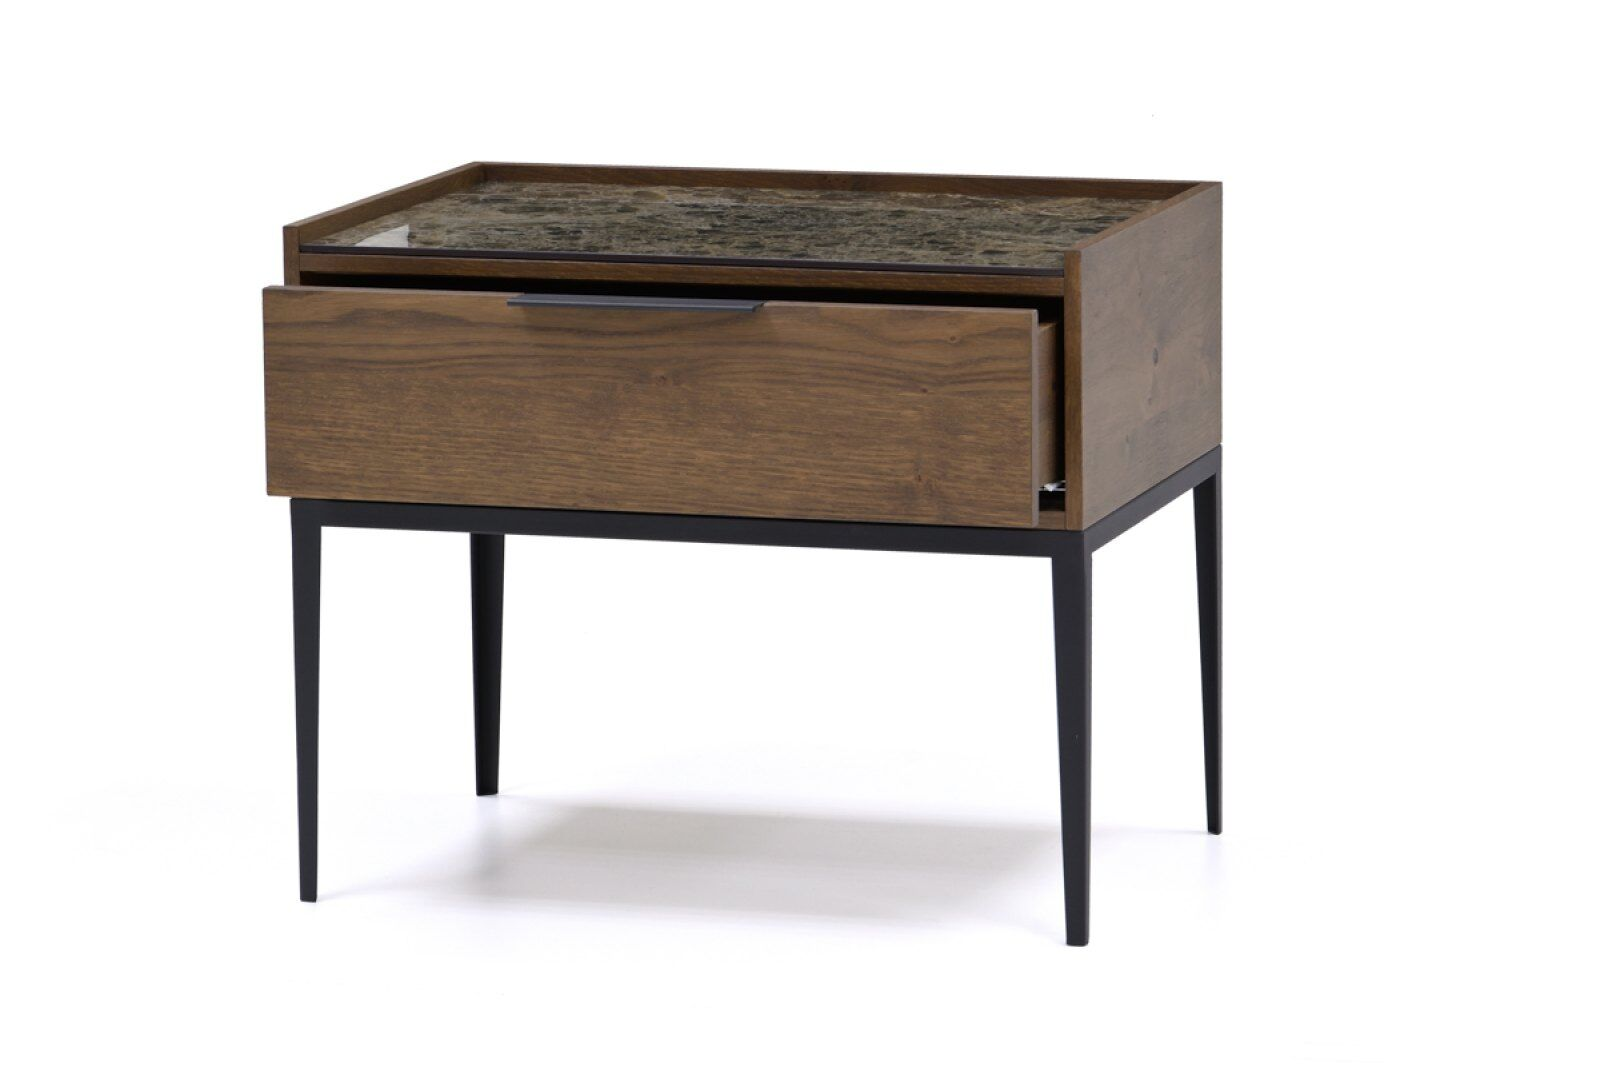 Moli Marble-effect Top Bedside Table 60cm / 1